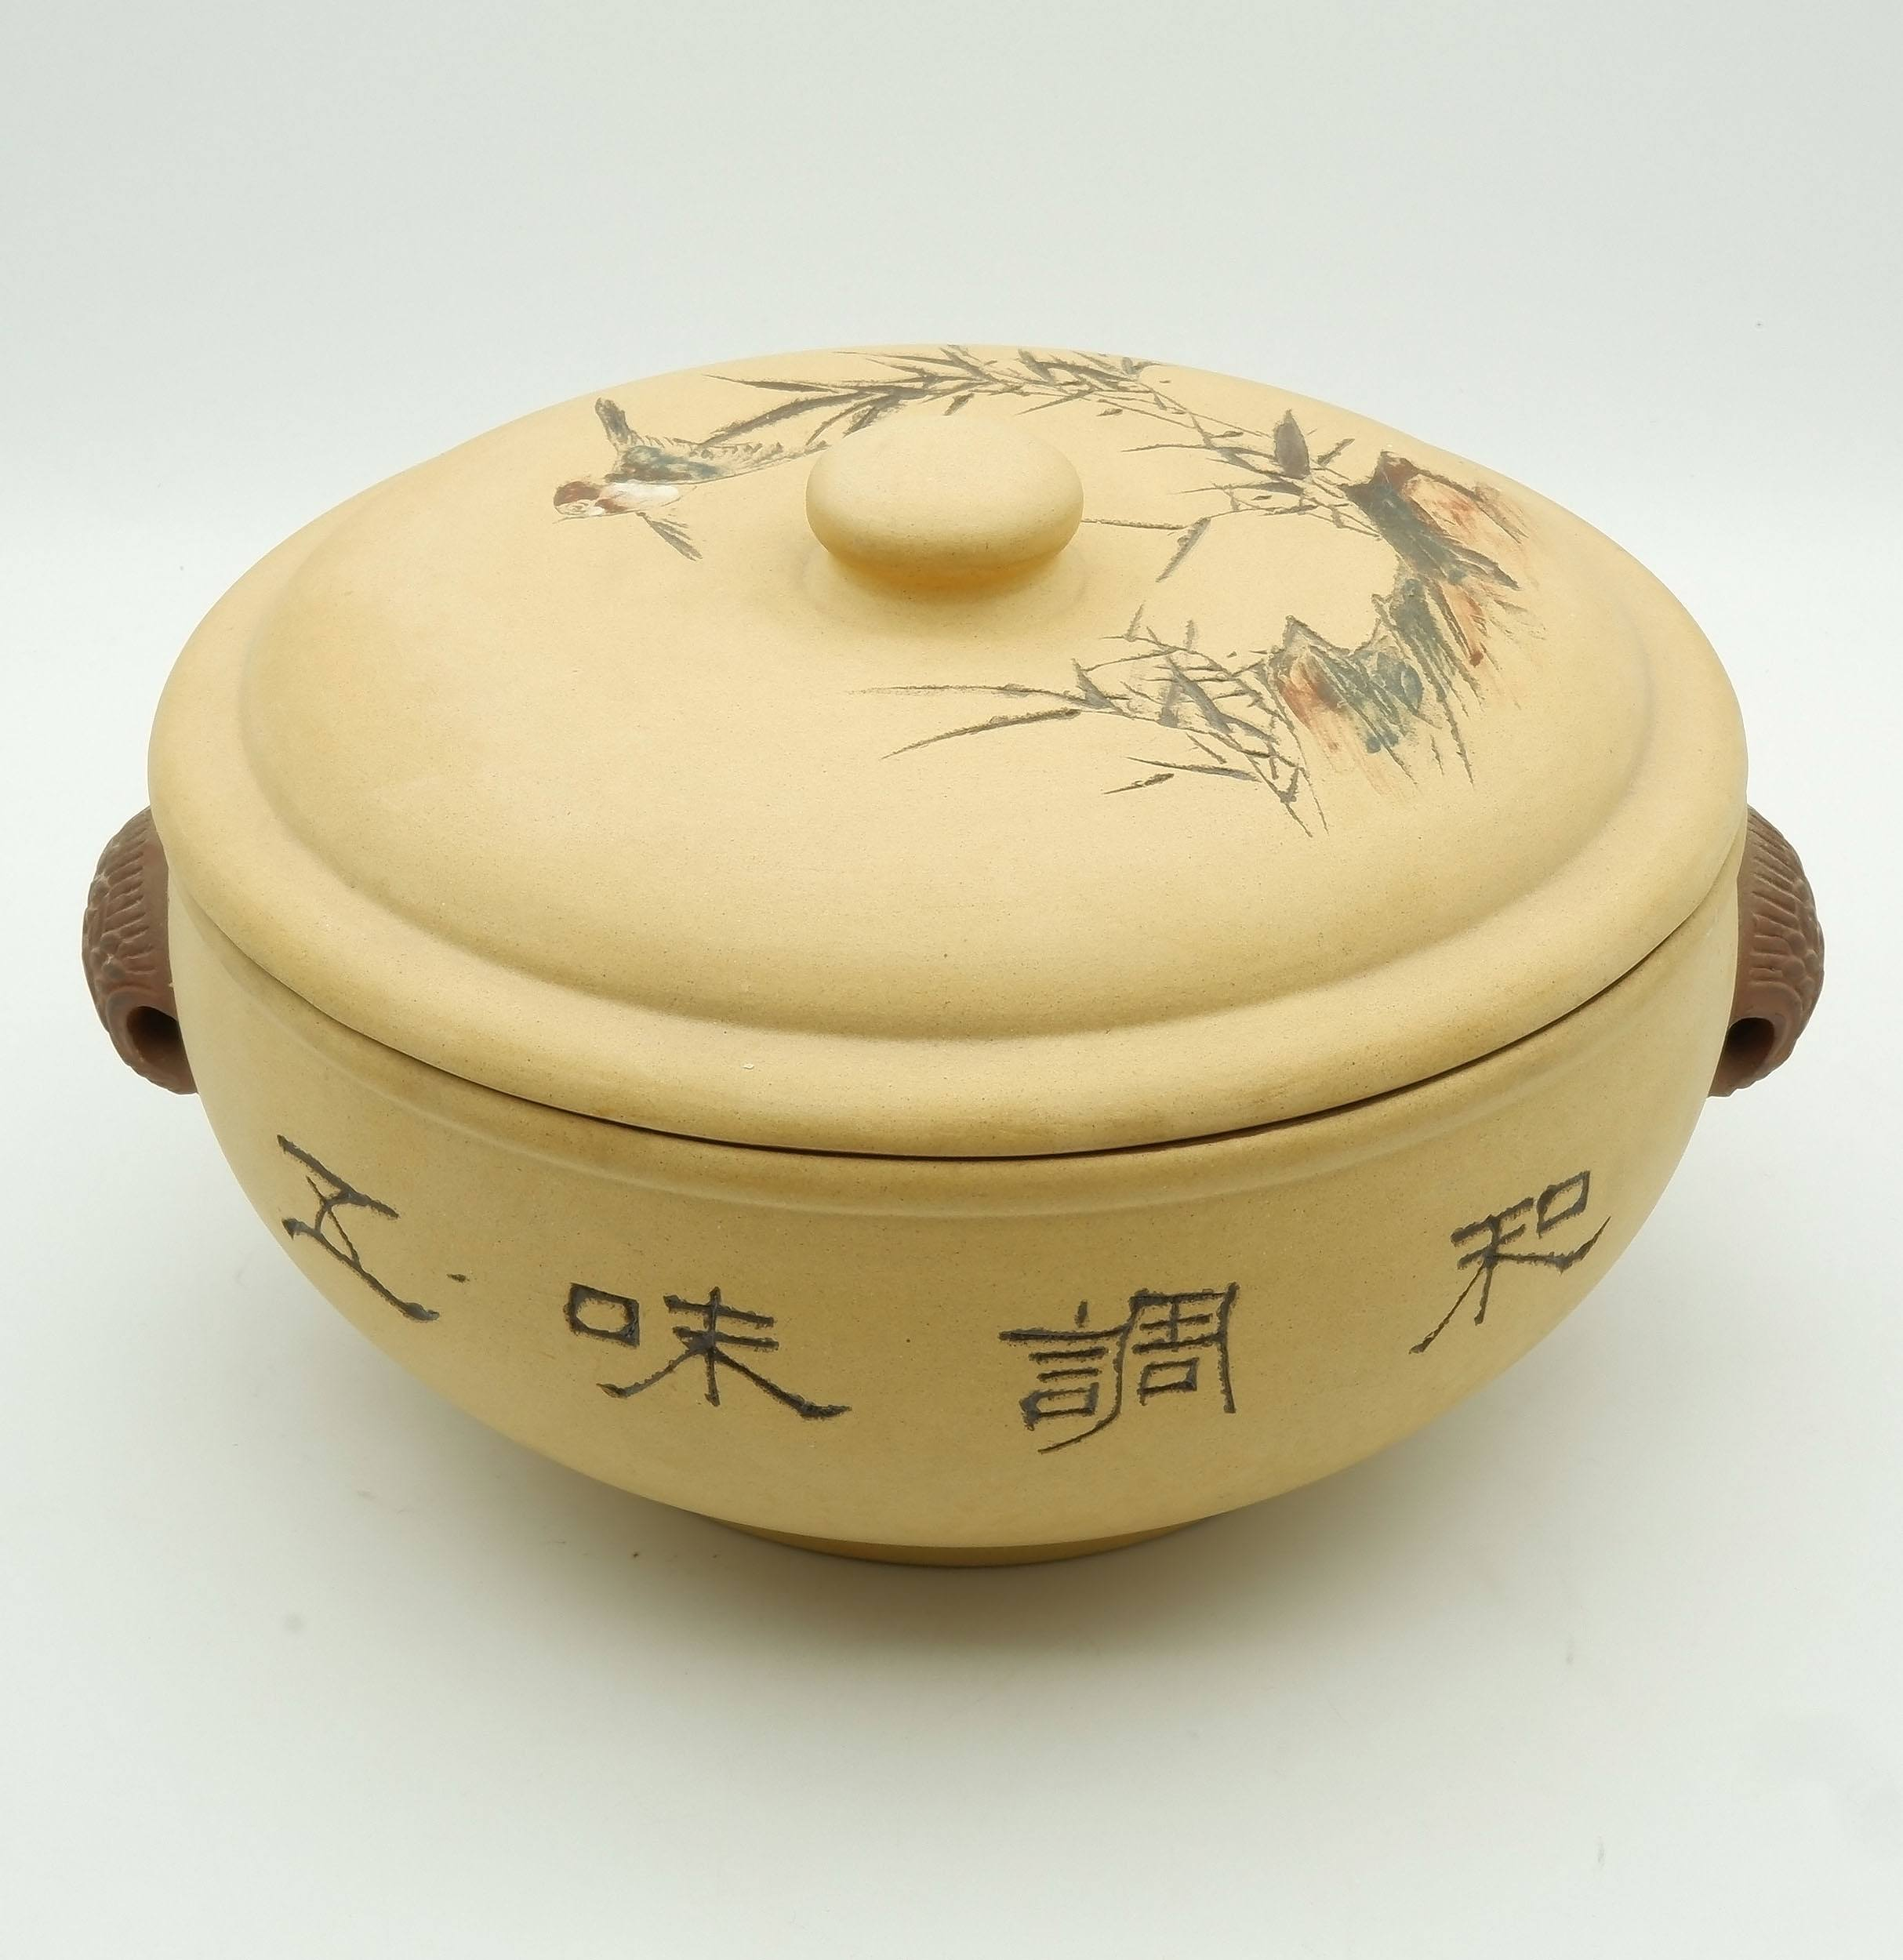 'Chinese Yunnan Ceramic Steamer, Chang Yueh'